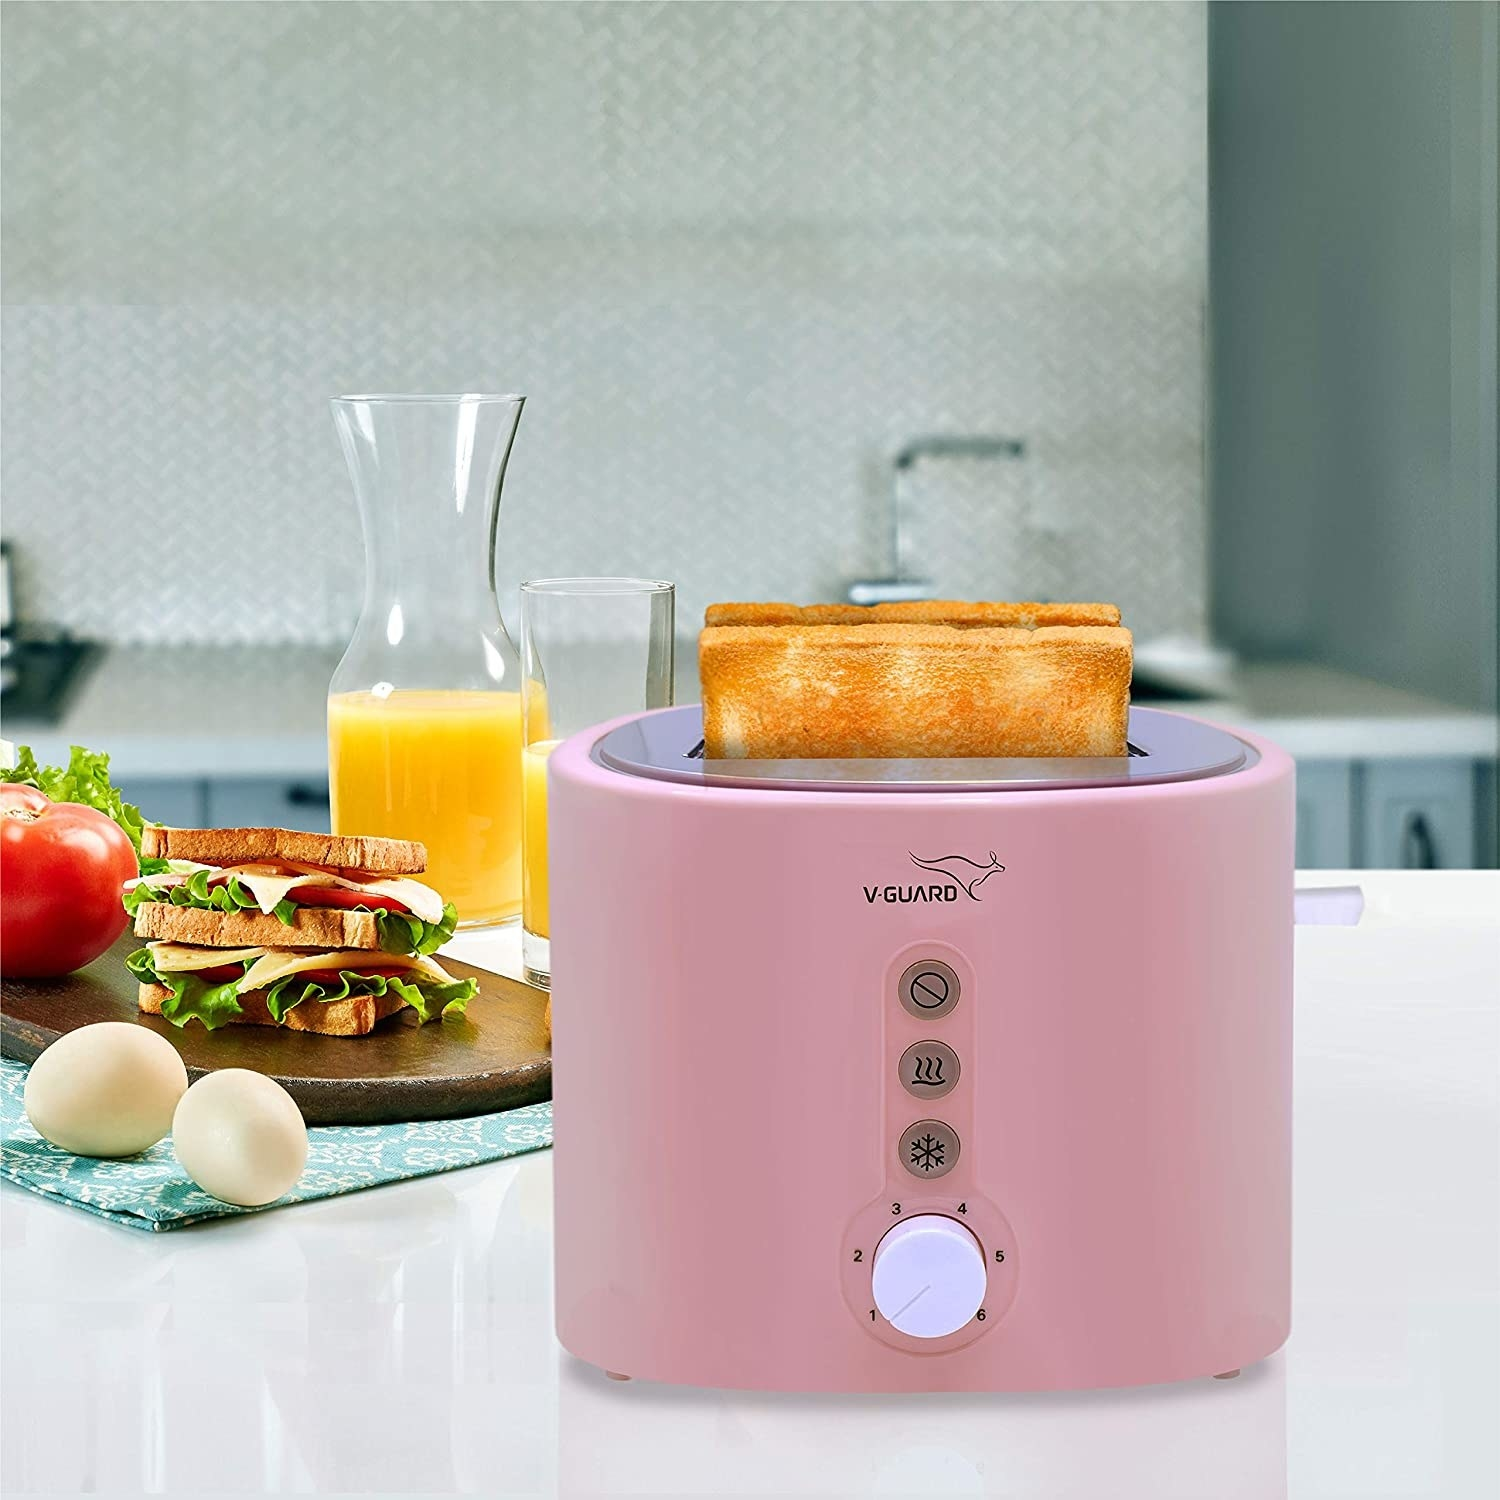 A pink pop-up toaster on a counter next to a sandwich with eggs